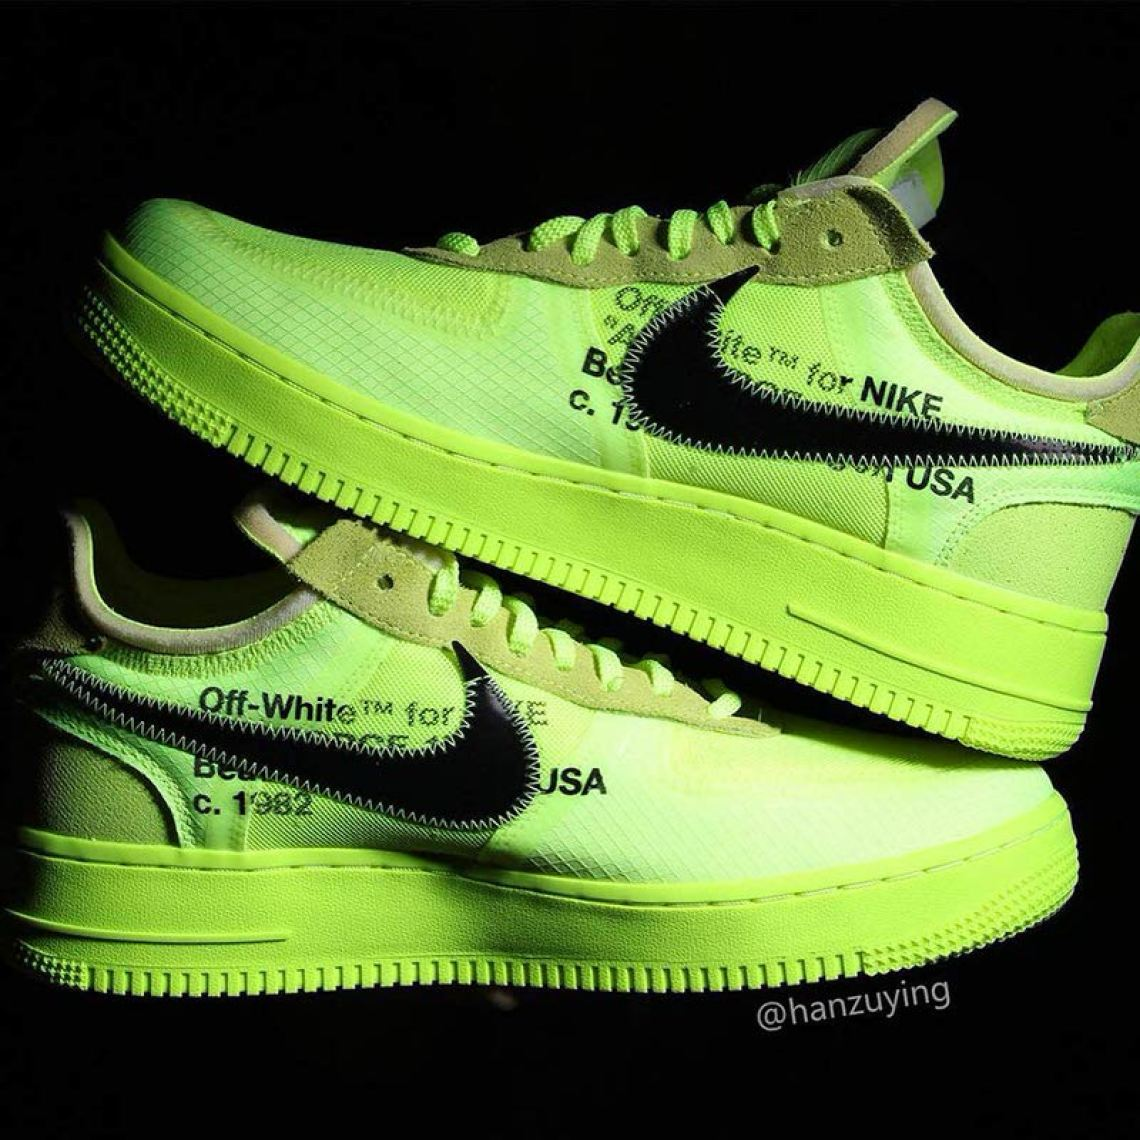 reputable site 674d7 77ff2 Off White x Nike Air Force 1 Low